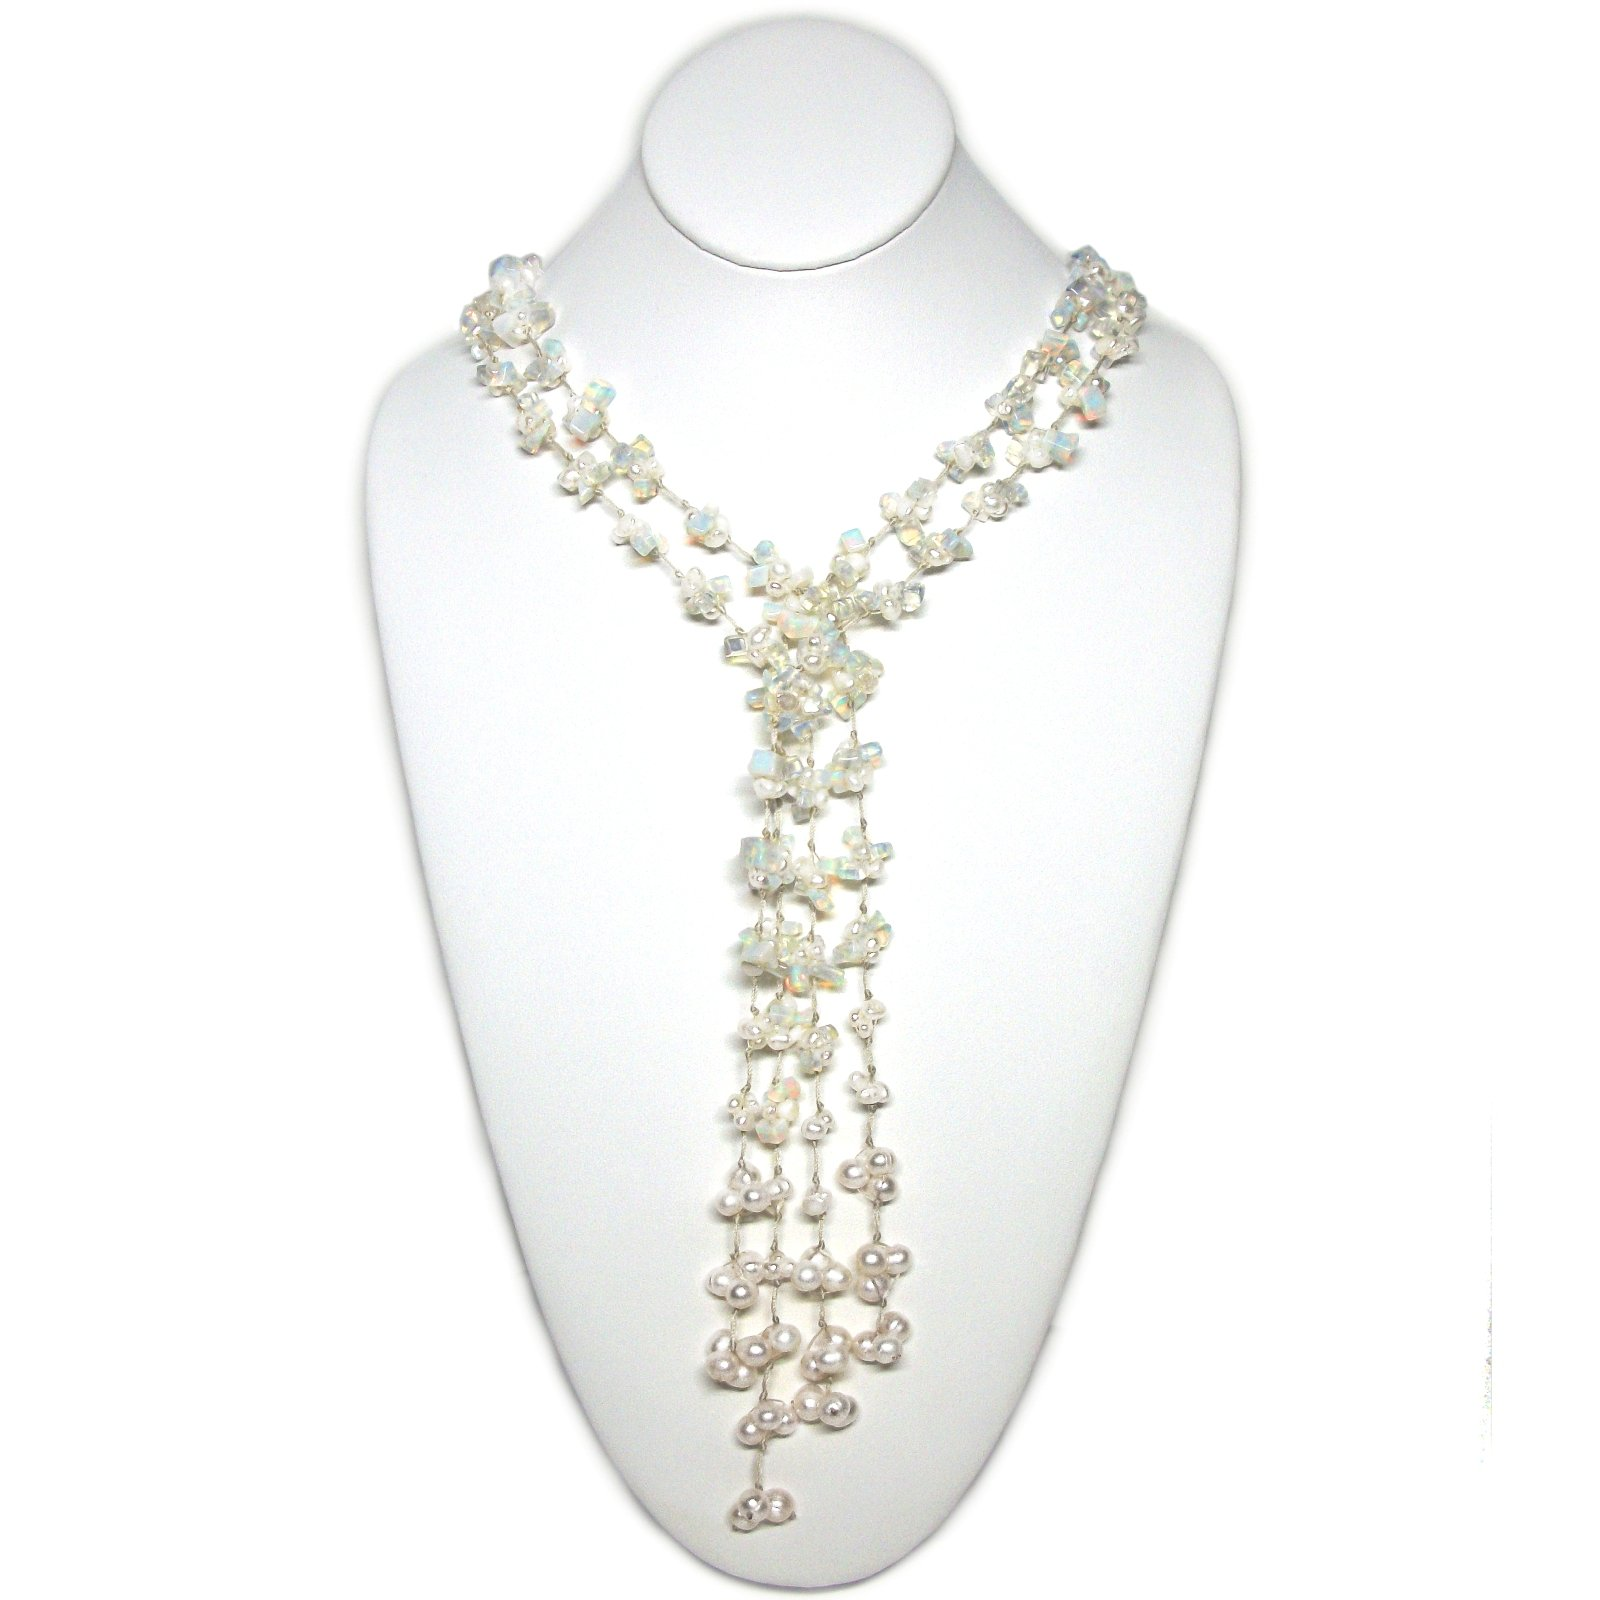 HinsonGayle 'Opal' Handcrafted 2-Strand Opalite & Genuine Freshwater Cultured Pearl Lariat Necklace-42 in length